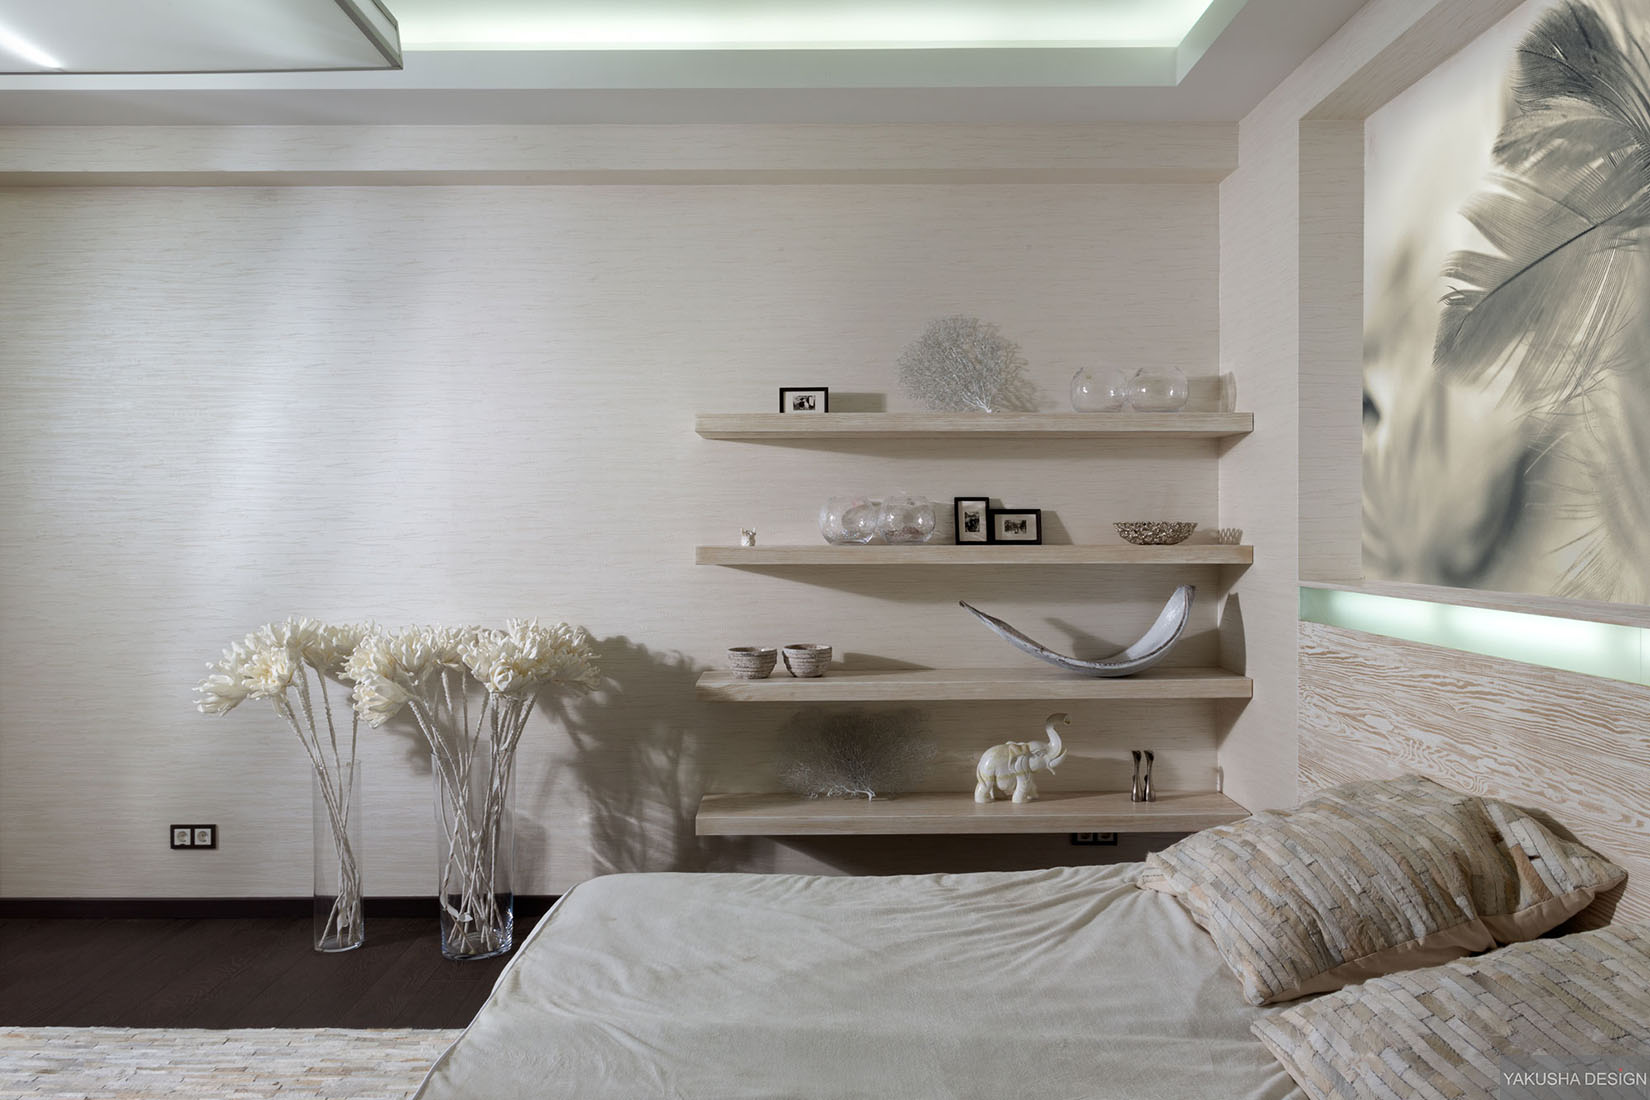 Textured White Bedroom With Collectables Displayed On